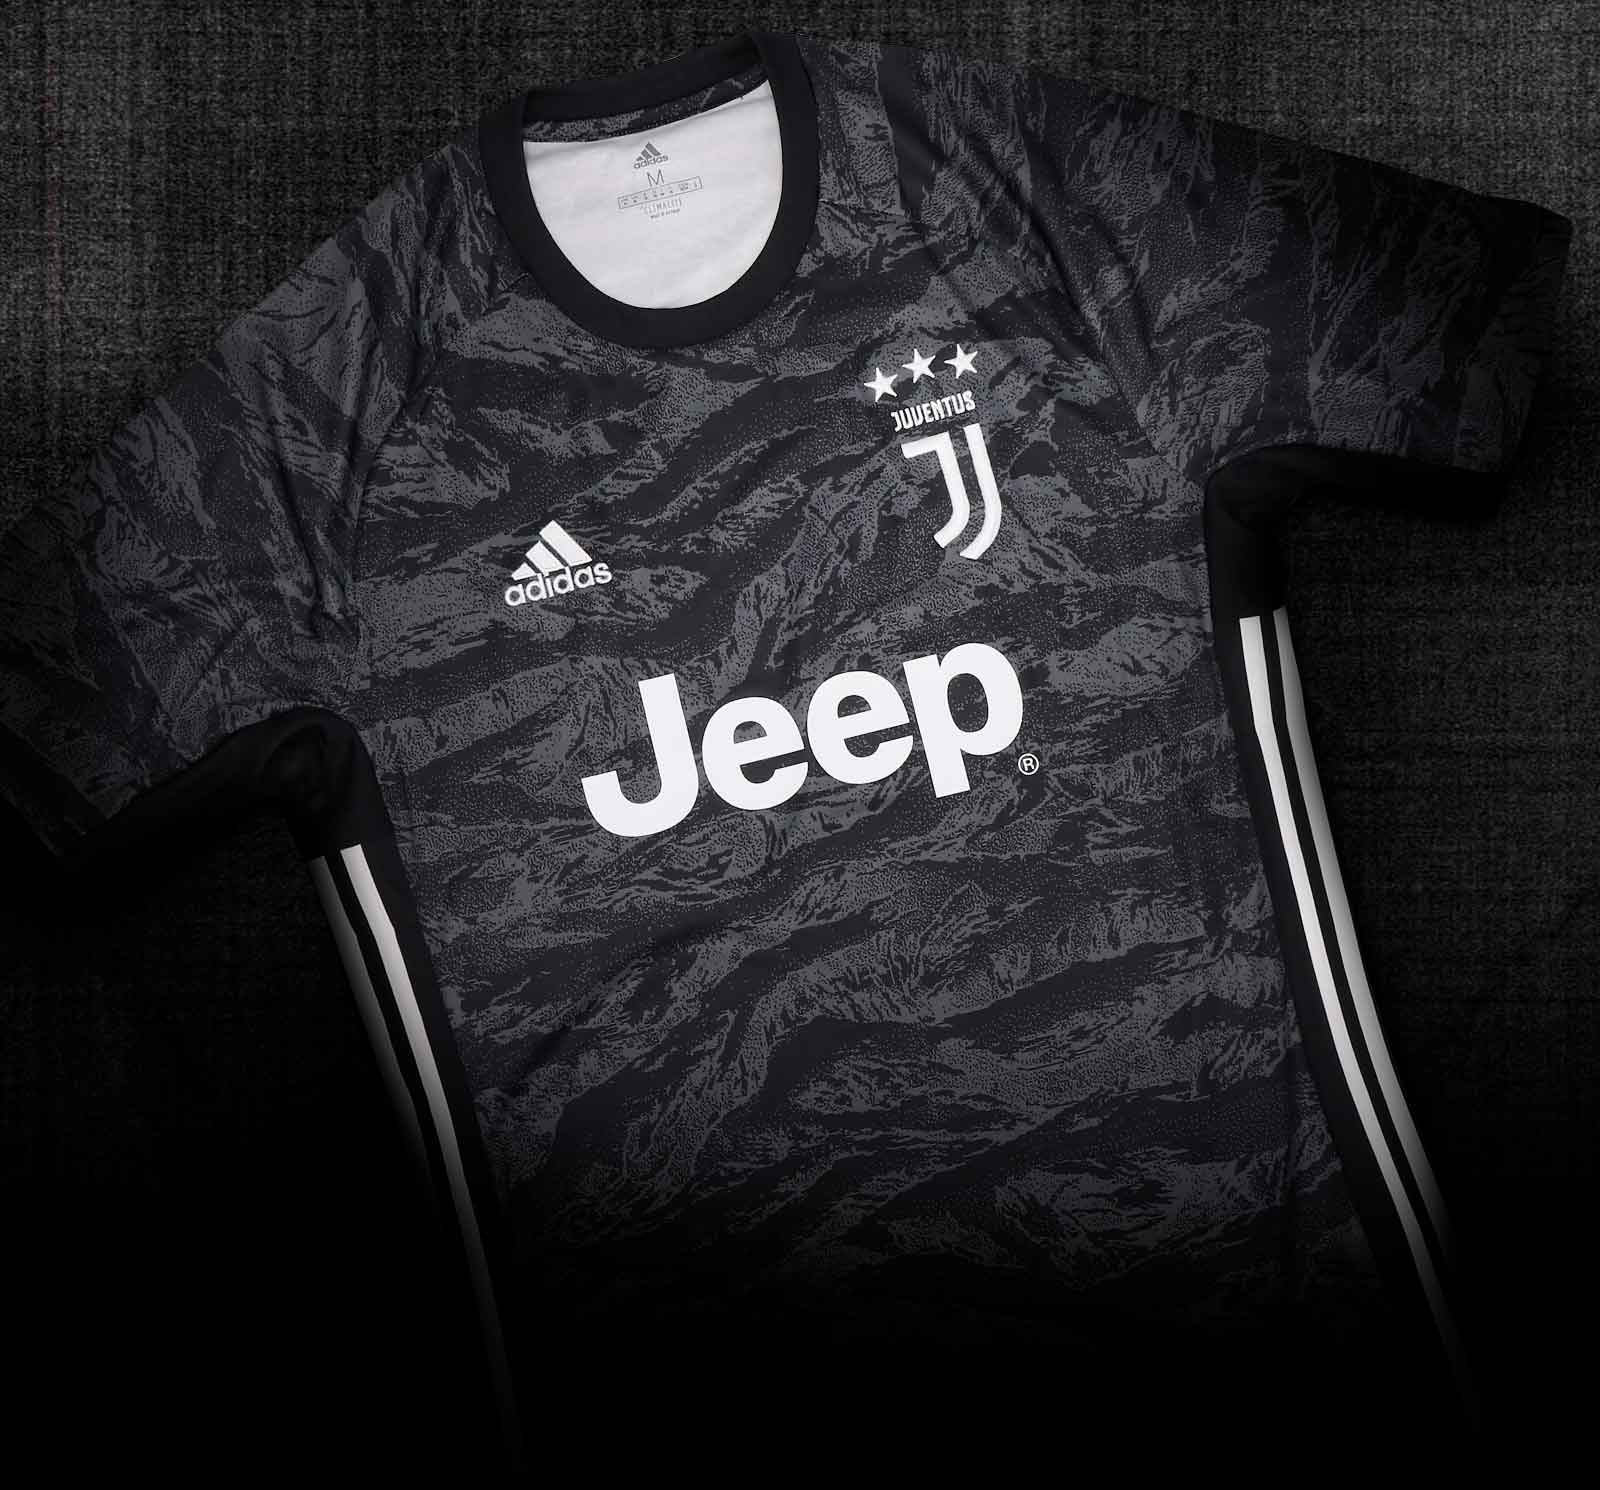 6a50e48ef Juventus 19-20 Goalkeeper Kit Released - Footy Headlines